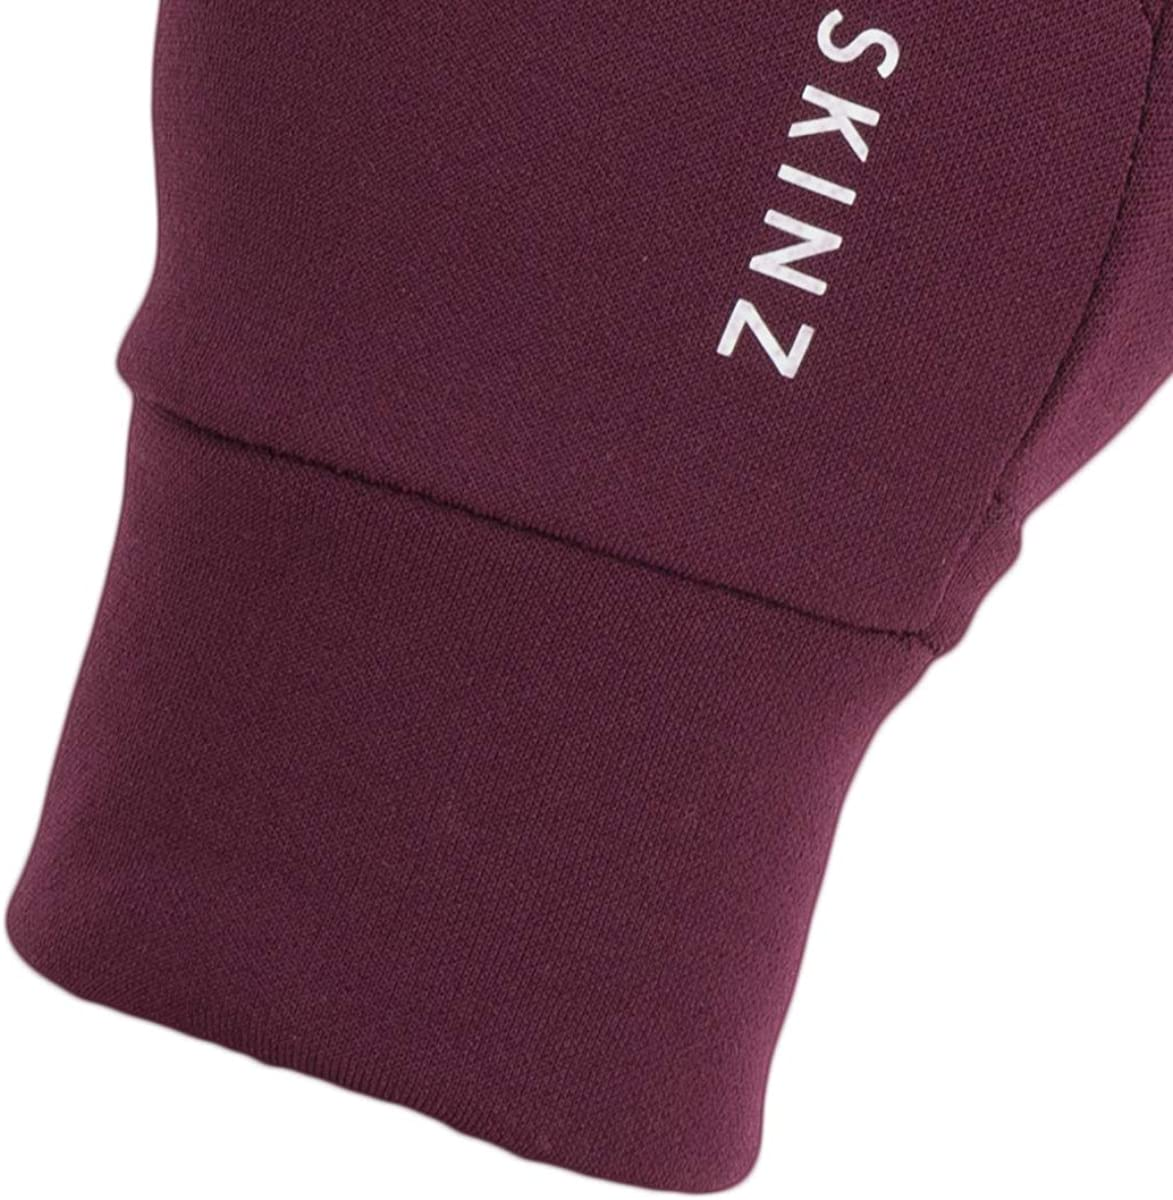 SEALSKINZ Womens Water Repellent All Weather Glove